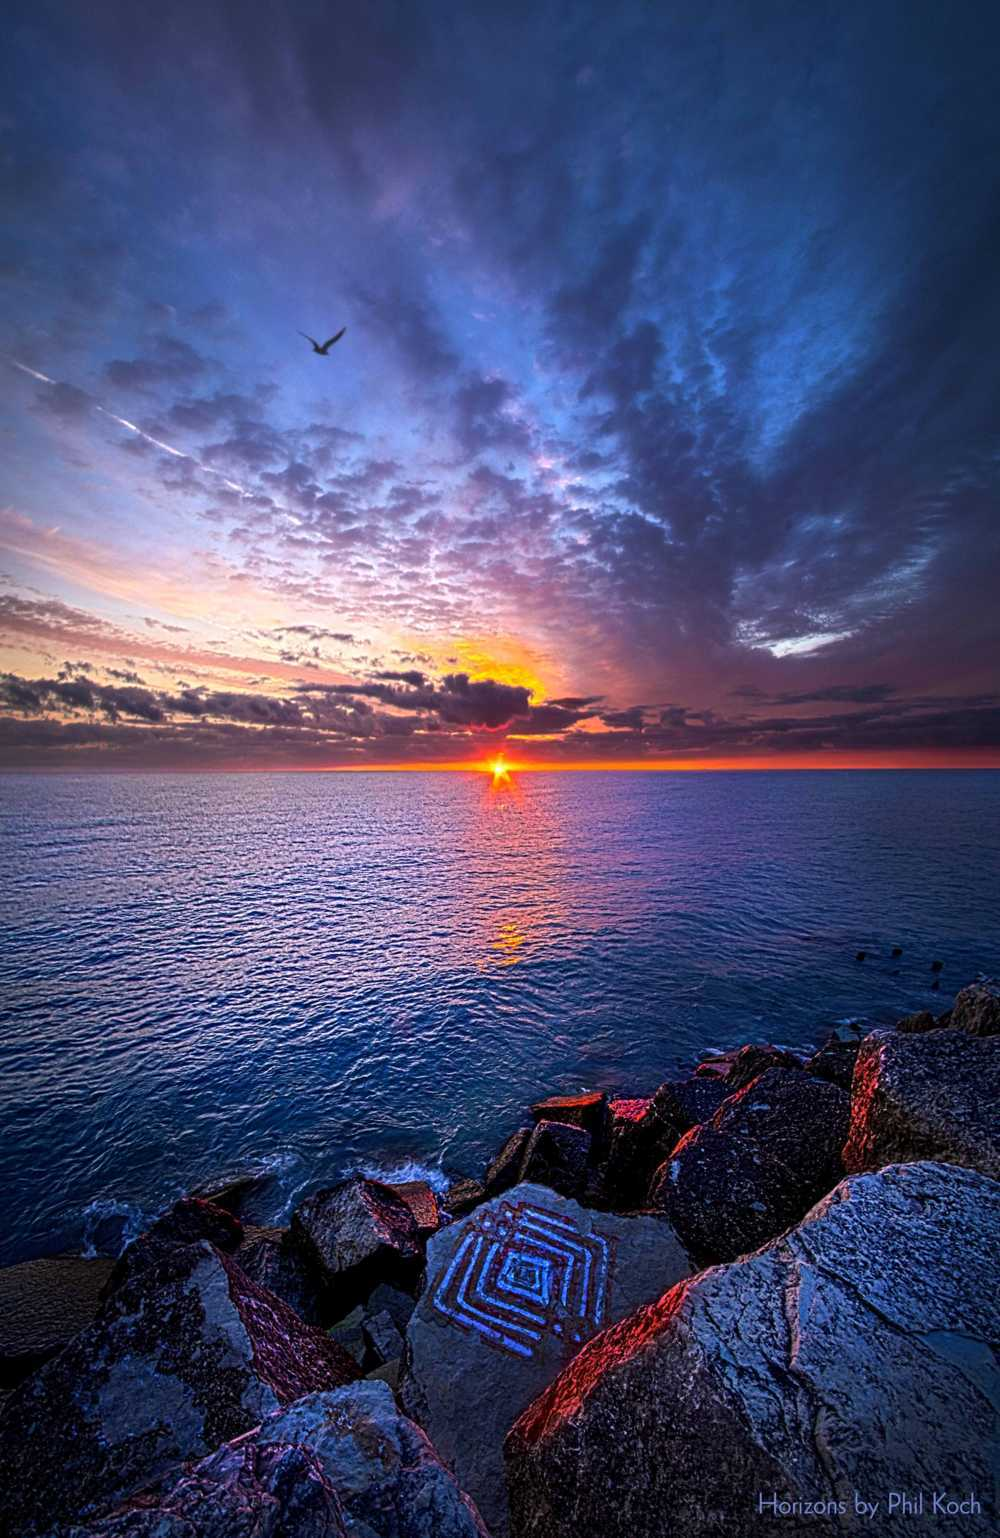 """The Stories You Tell""                                         On the shore of Lake Michigan.                                         Wiscon... via Phil Koch"